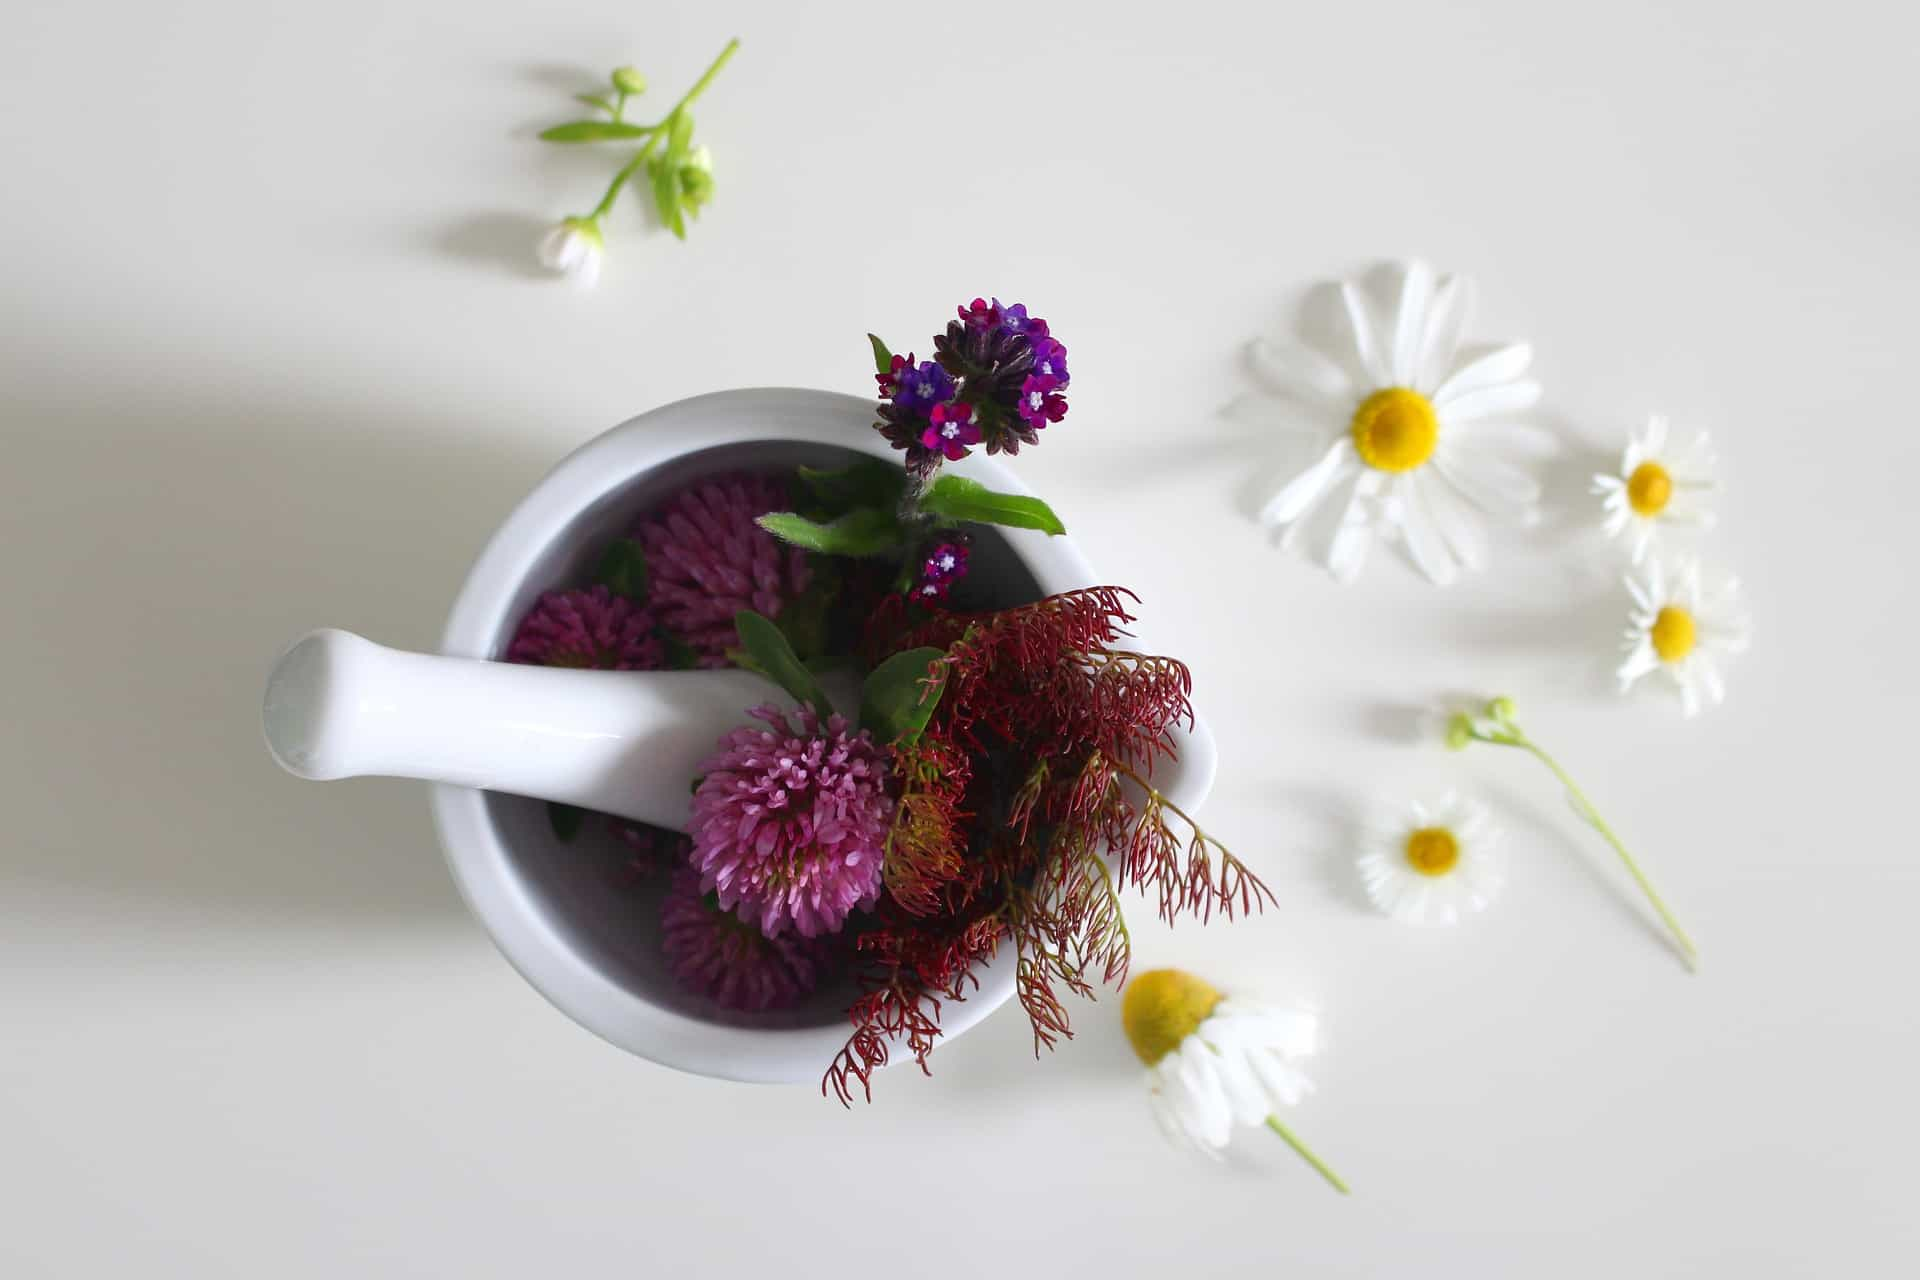 The Safety Of Natural Remedies: From Prejudice To Evidence